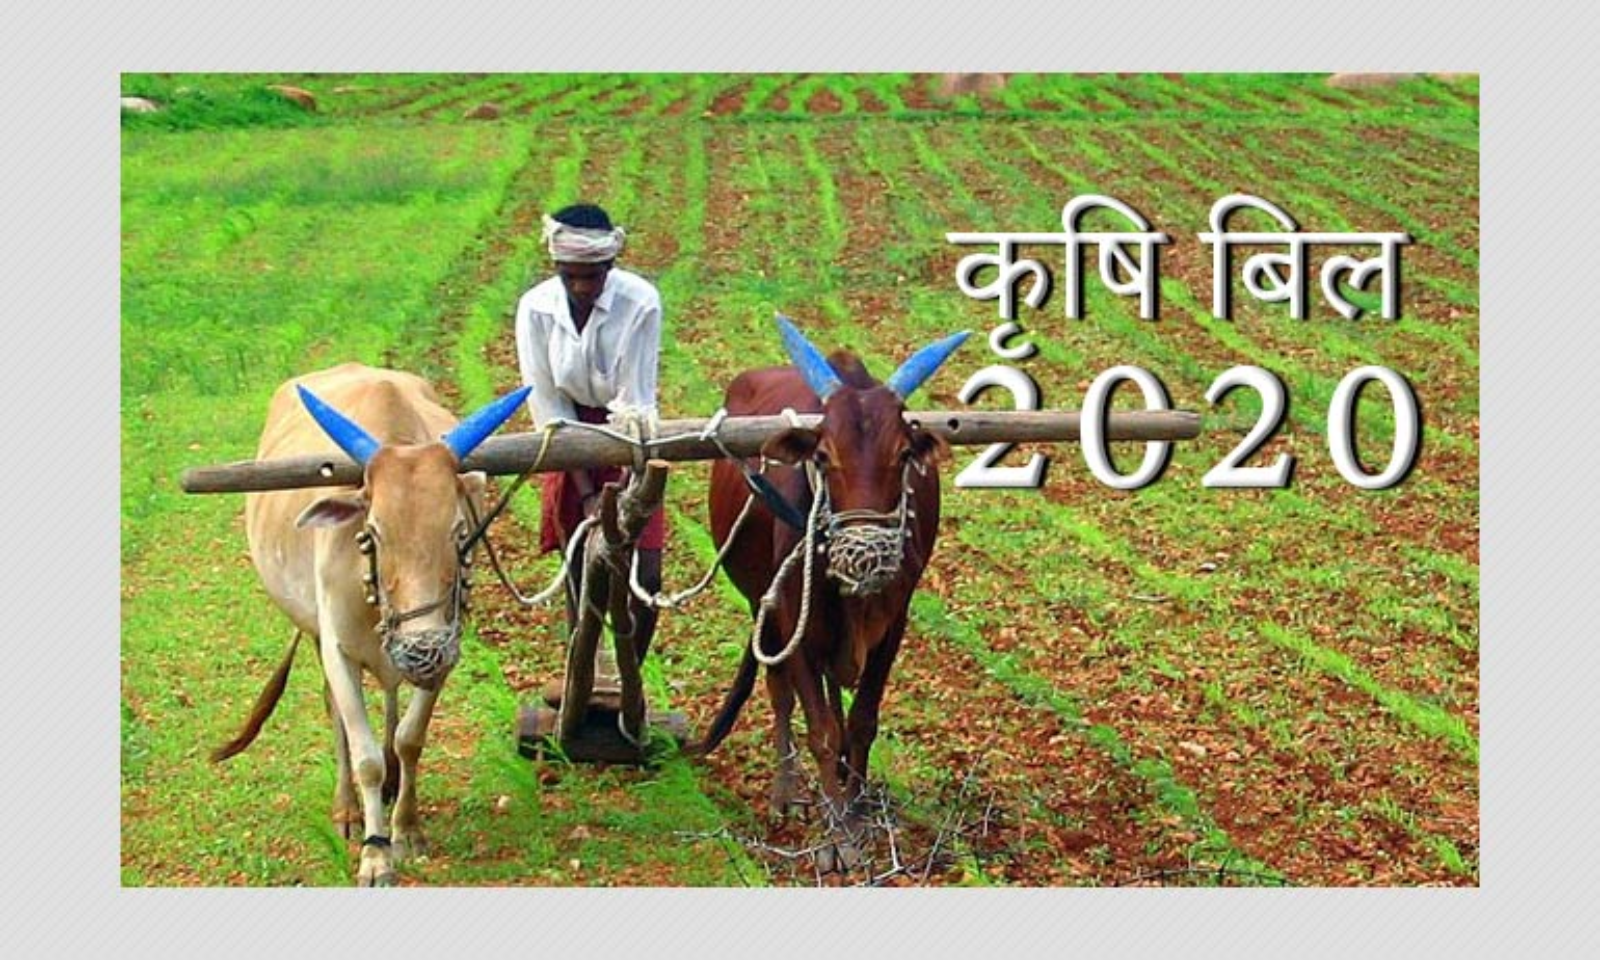 Protest-Farmer-For-the-krishi-bill-2020